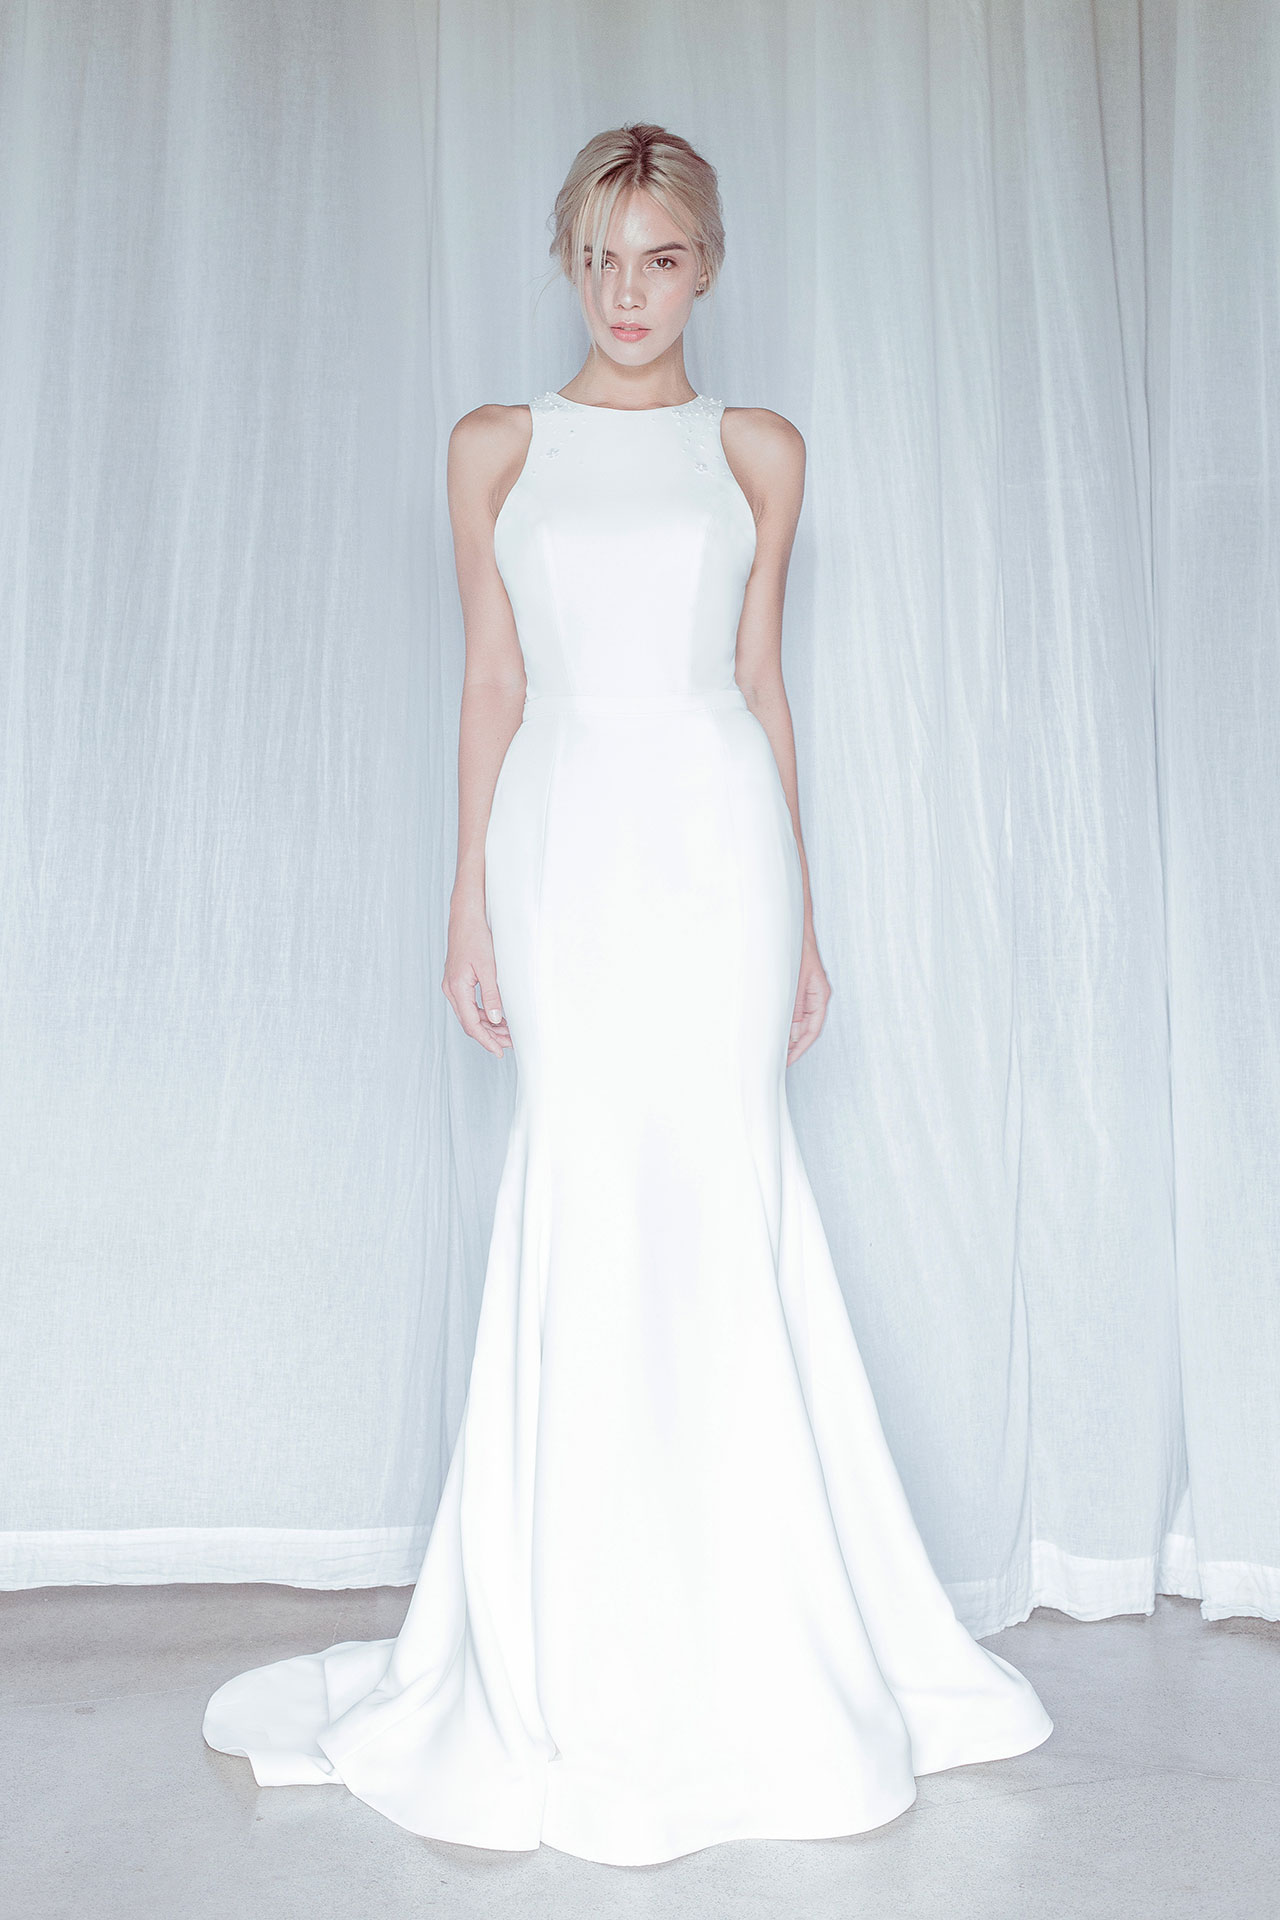 OUI THE LABEL Cook Wedding Gown | Wedding Dresses under $3,000 | LOVE FIND CO. Bridal Dress Directory